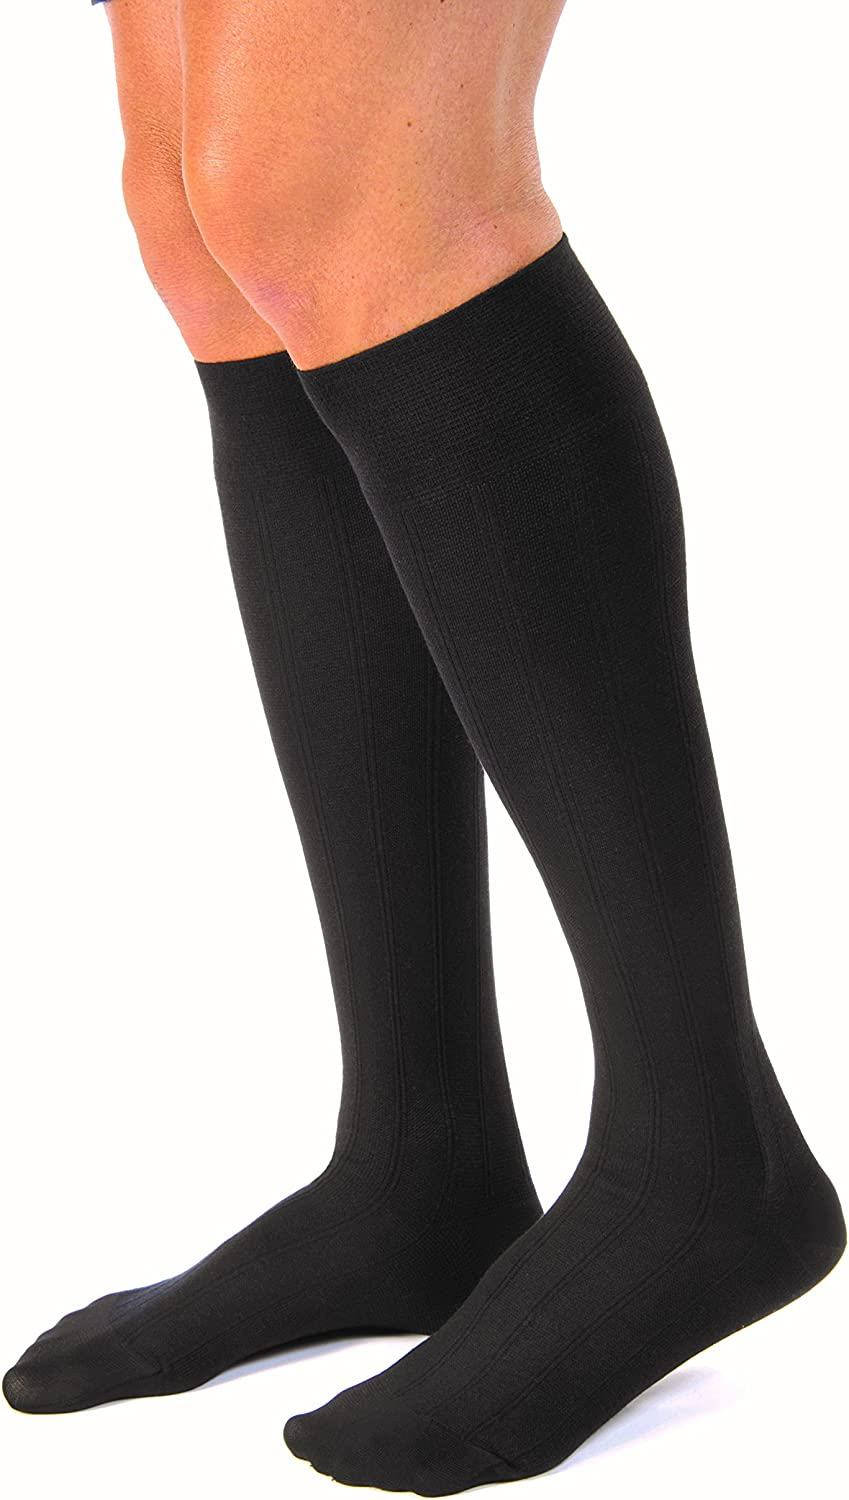 BSN Medical 113103 JOBST Men's with Toe Year-end gift Knee CasualSock Online limited product Closed